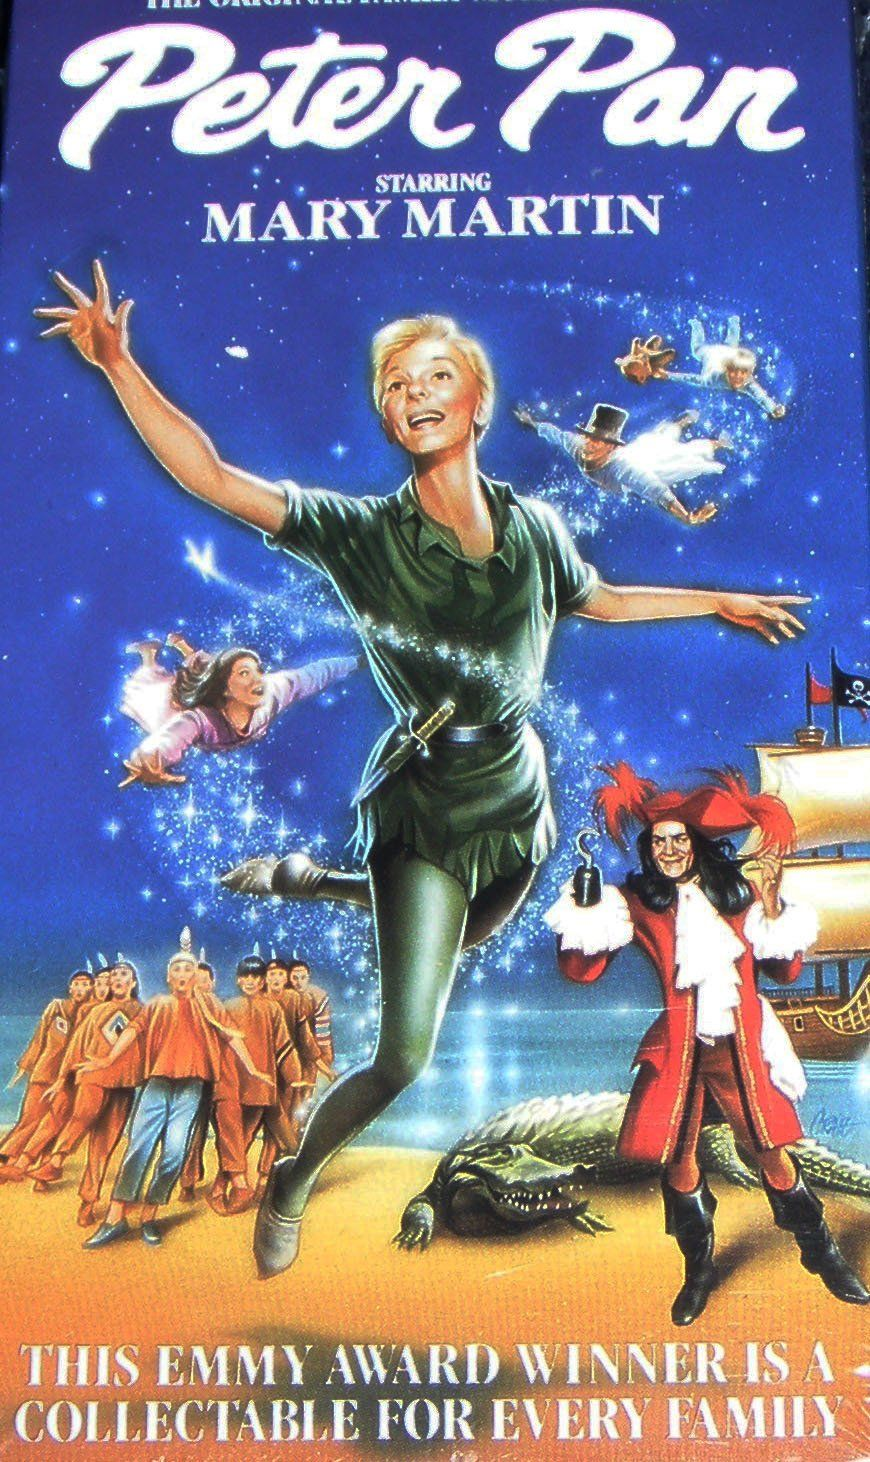 Peter Pan 30th Anniversary Collectors Edition Vhs Second Star